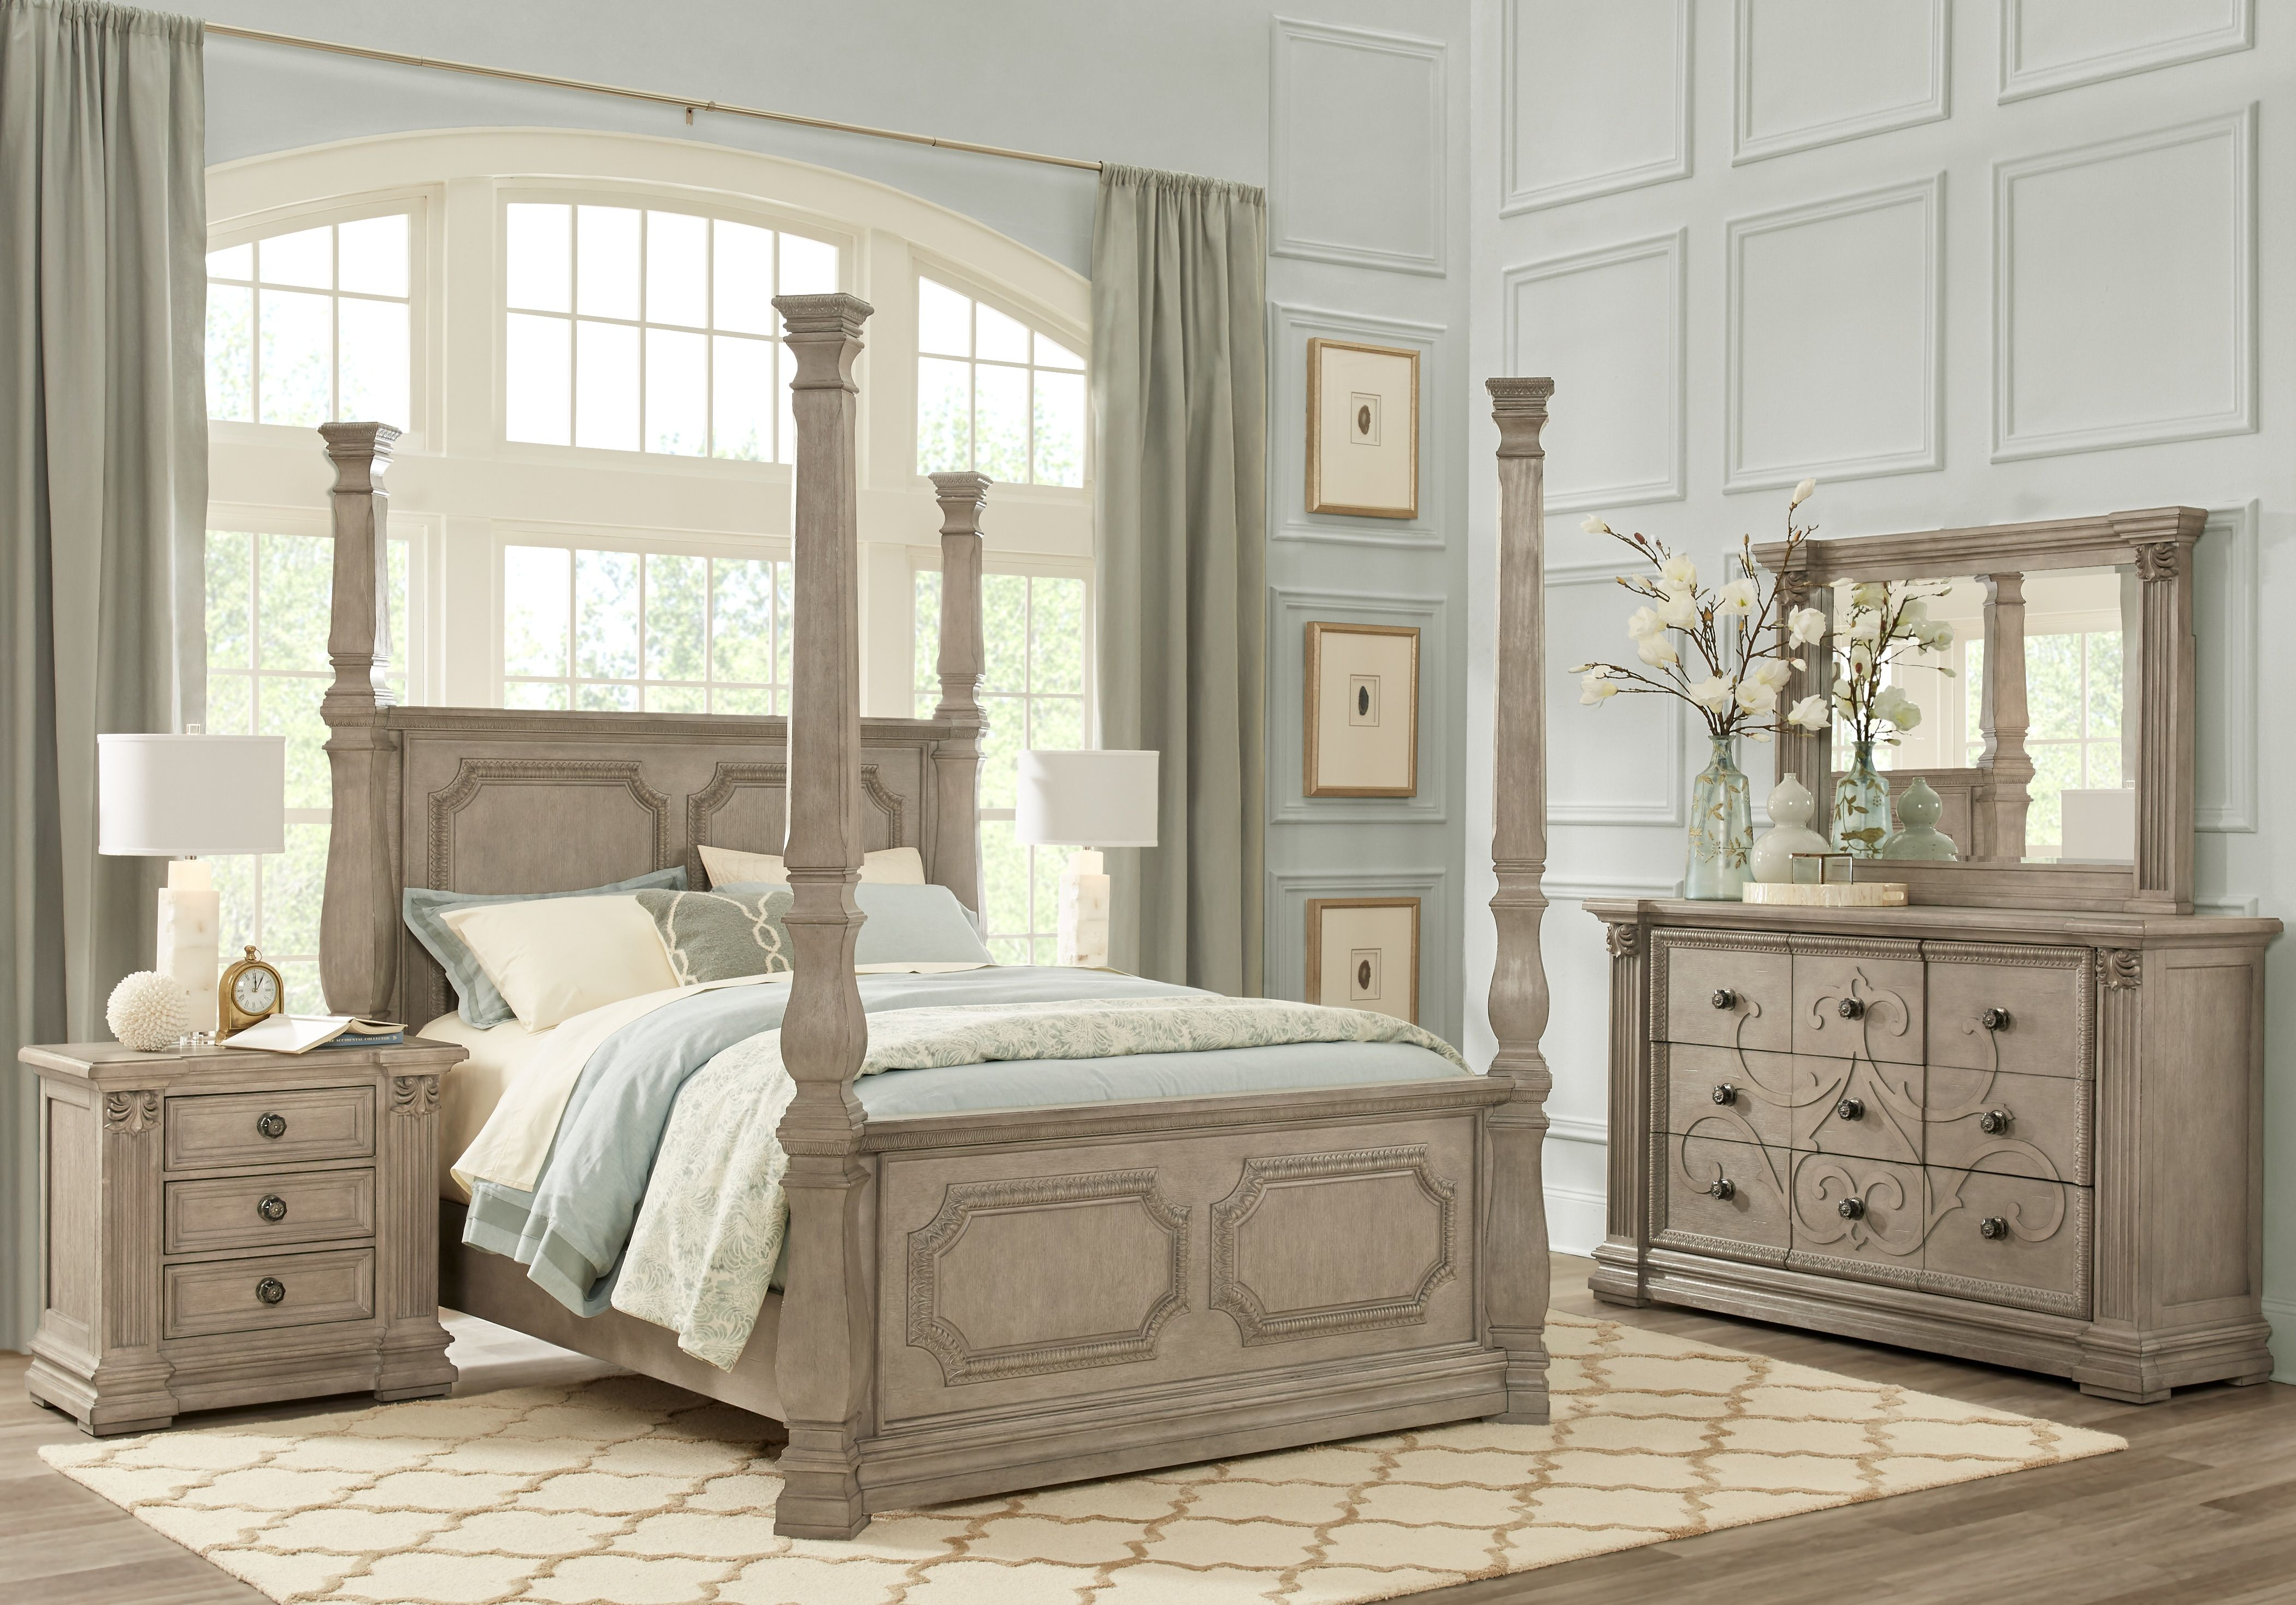 Havencrest Gray 8 Pc King Poster Bedroom in 2019 | Potential ...